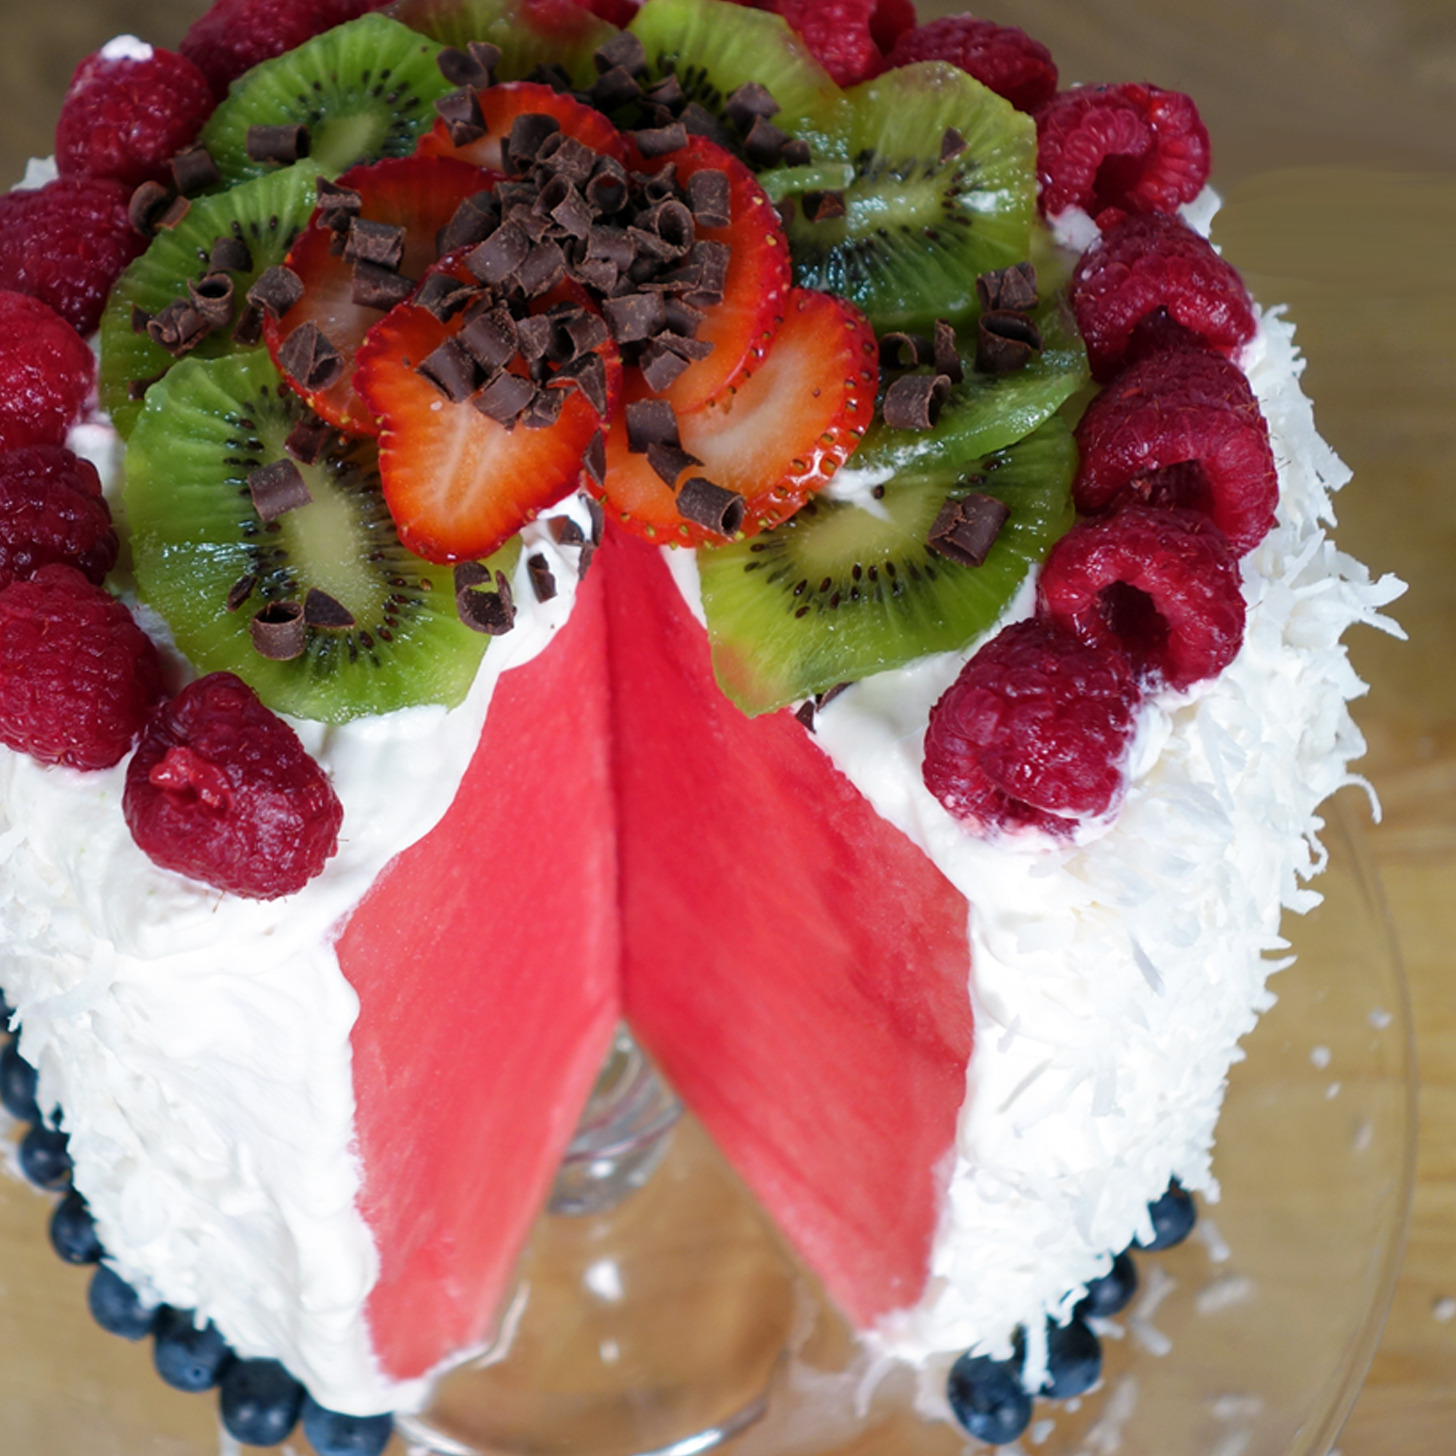 How to Make a Watermelon Cake | Video | POPSUGAR Food